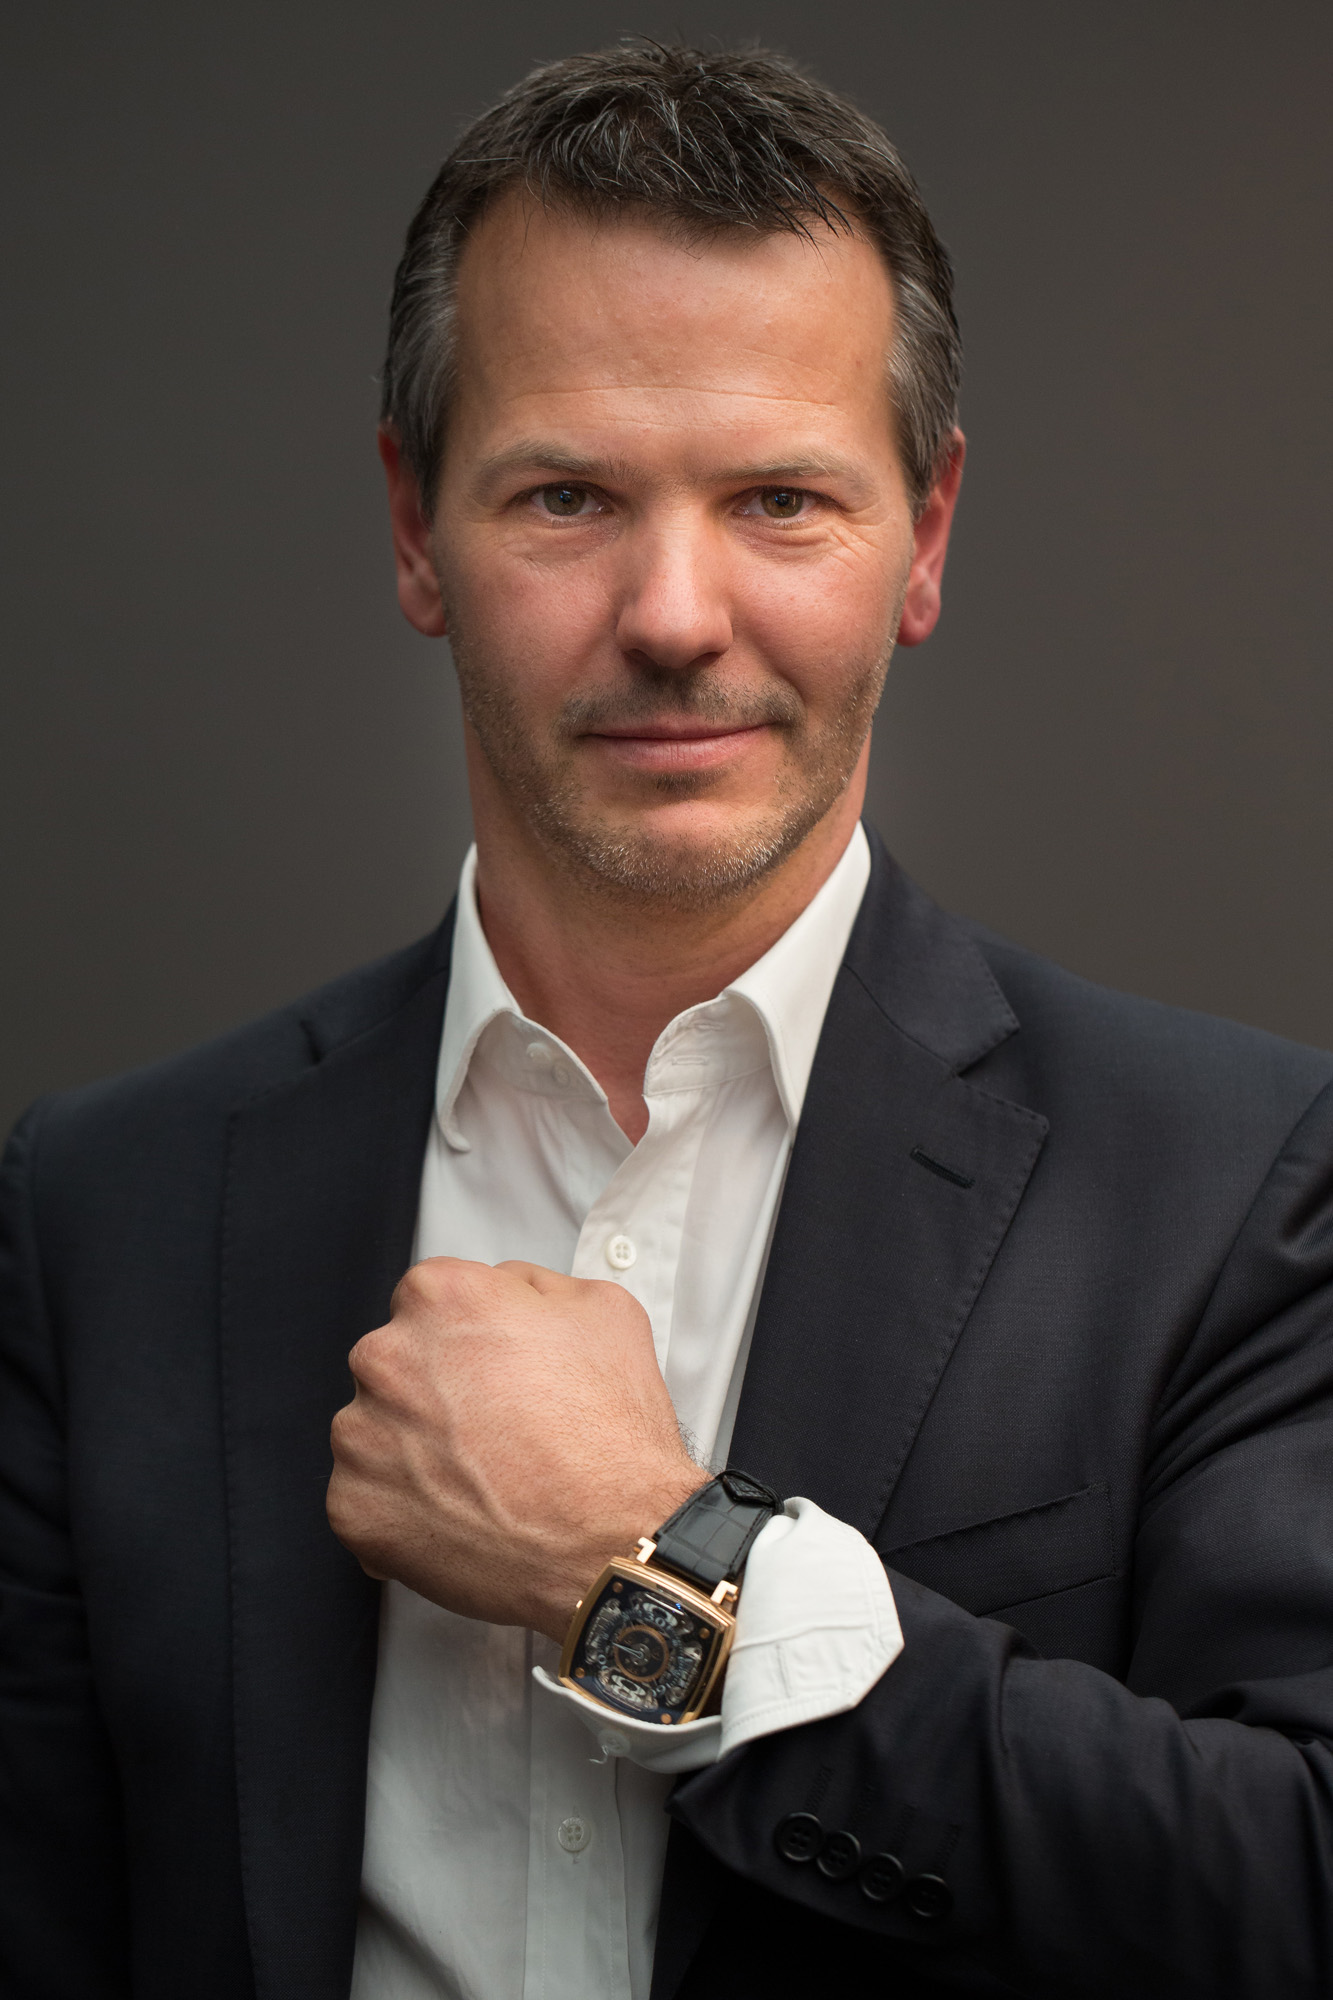 MCT Watches CEO François Candolfi wearing the MCT S-110